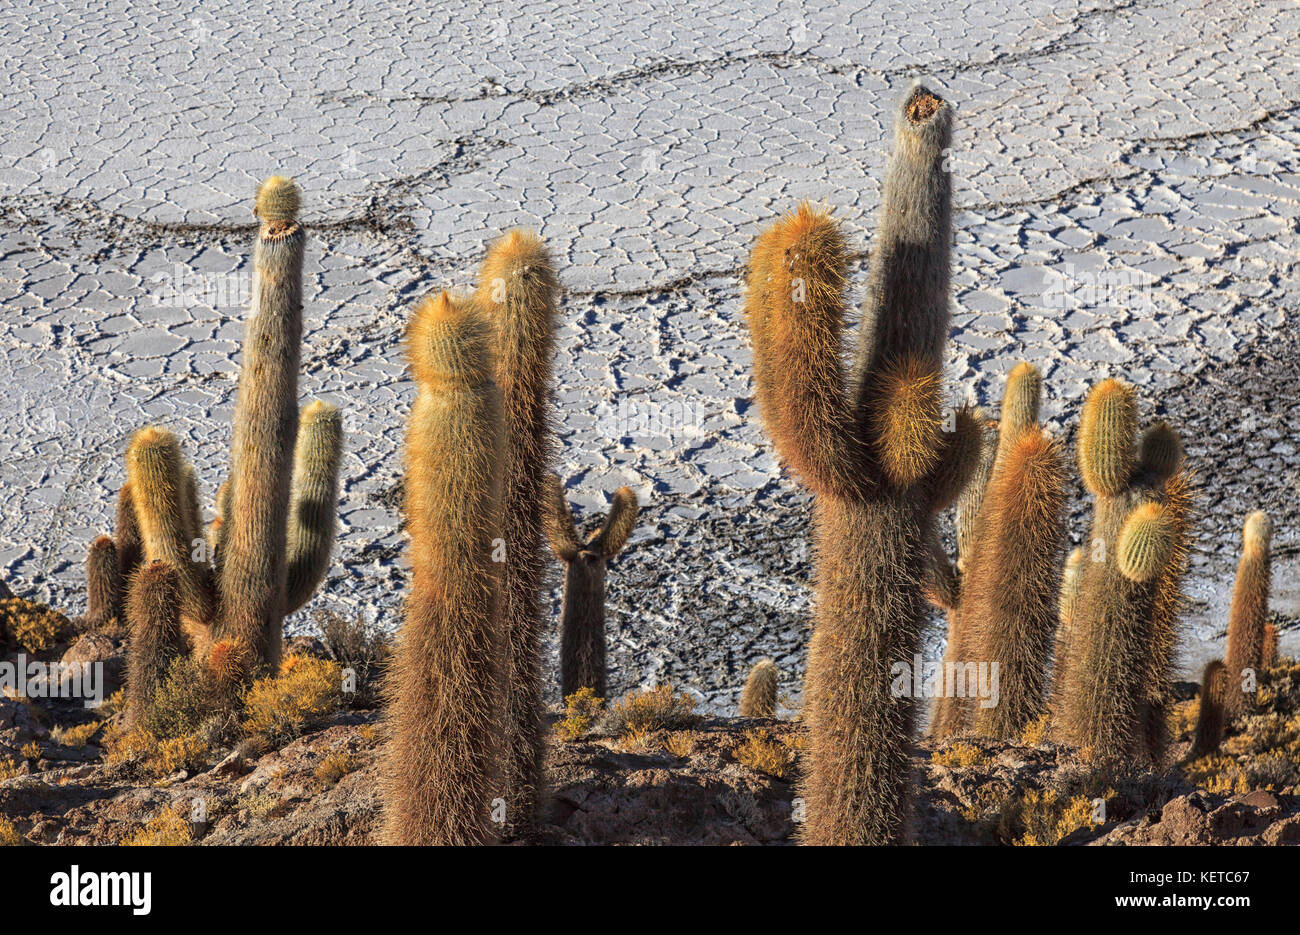 Close up of giant cacti on hills and rocks of the Isla Incahuasi located in the Salar de Uyuni South Lipez Bolivia - Stock Image